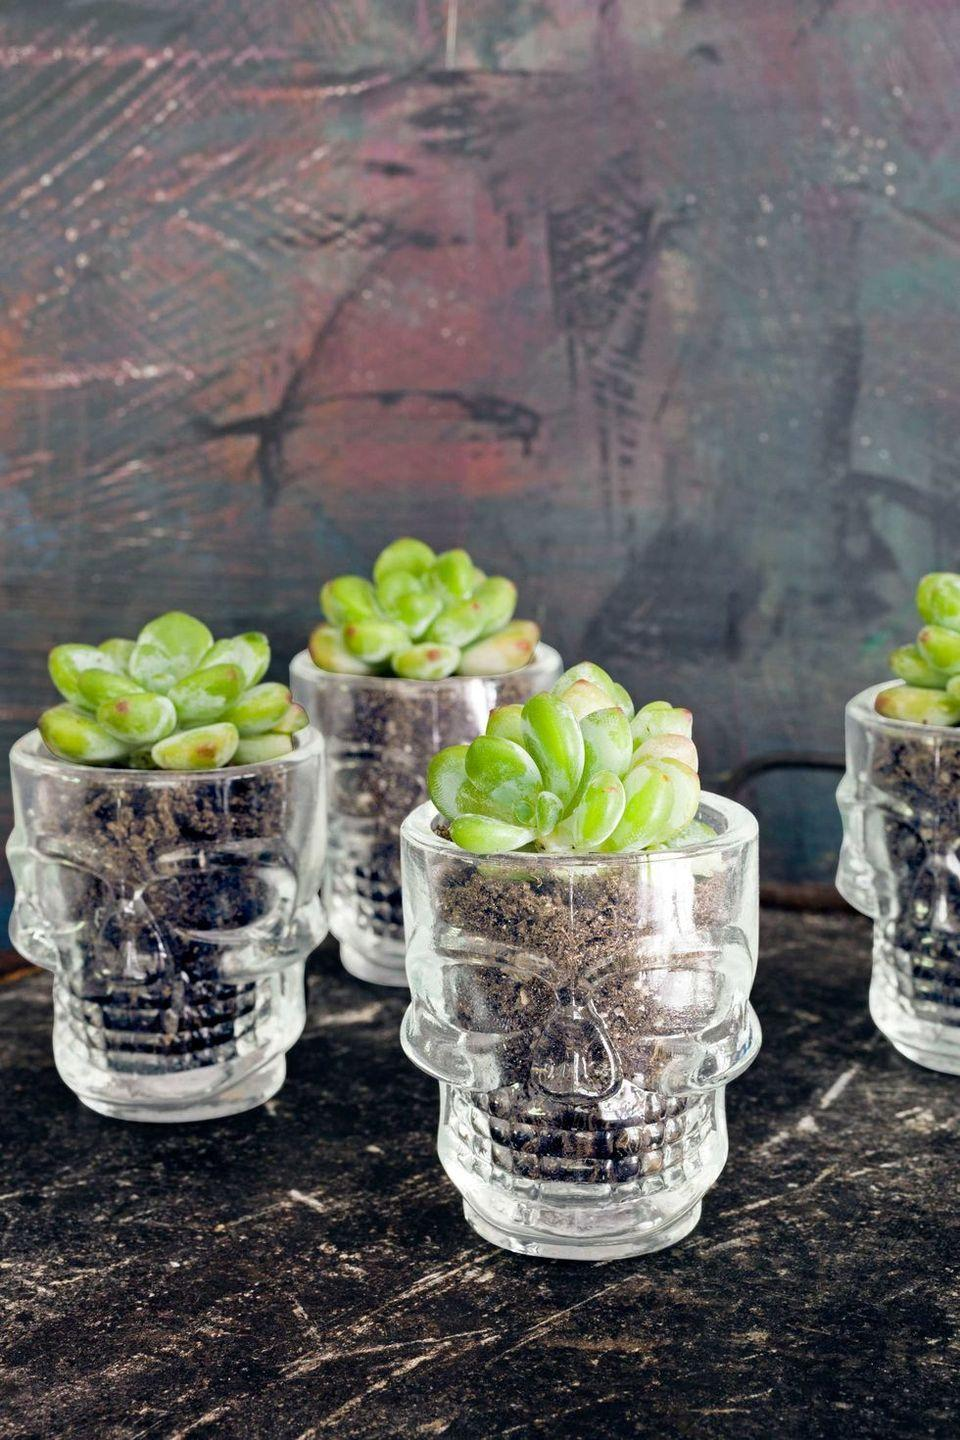 """<p>Give succulents a spooky twist by placing them right inside skull glasses. </p><p><a class=""""link rapid-noclick-resp"""" href=""""https://go.redirectingat.com?id=74968X1596630&url=https%3A%2F%2Fwww.walmart.com%2Fip%2FEbros-Gift-Set-2-Clear-Translucent-Acrylic-Skeleton-Skull-Face-Whisky-Vodka-Scotch-Liquor-Shot-Glass-Shooters-Alcoholic-Beverage-Glasses-Halloween-Sk%2F492434069&sref=https%3A%2F%2Fwww.goodhousekeeping.com%2Fholidays%2Fhalloween-ideas%2Fg33437890%2Fhalloween-table-decorations-centerpieces%2F"""" rel=""""nofollow noopener"""" target=""""_blank"""" data-ylk=""""slk:SHOP SKULL GLASSES"""">SHOP SKULL GLASSES</a></p>"""